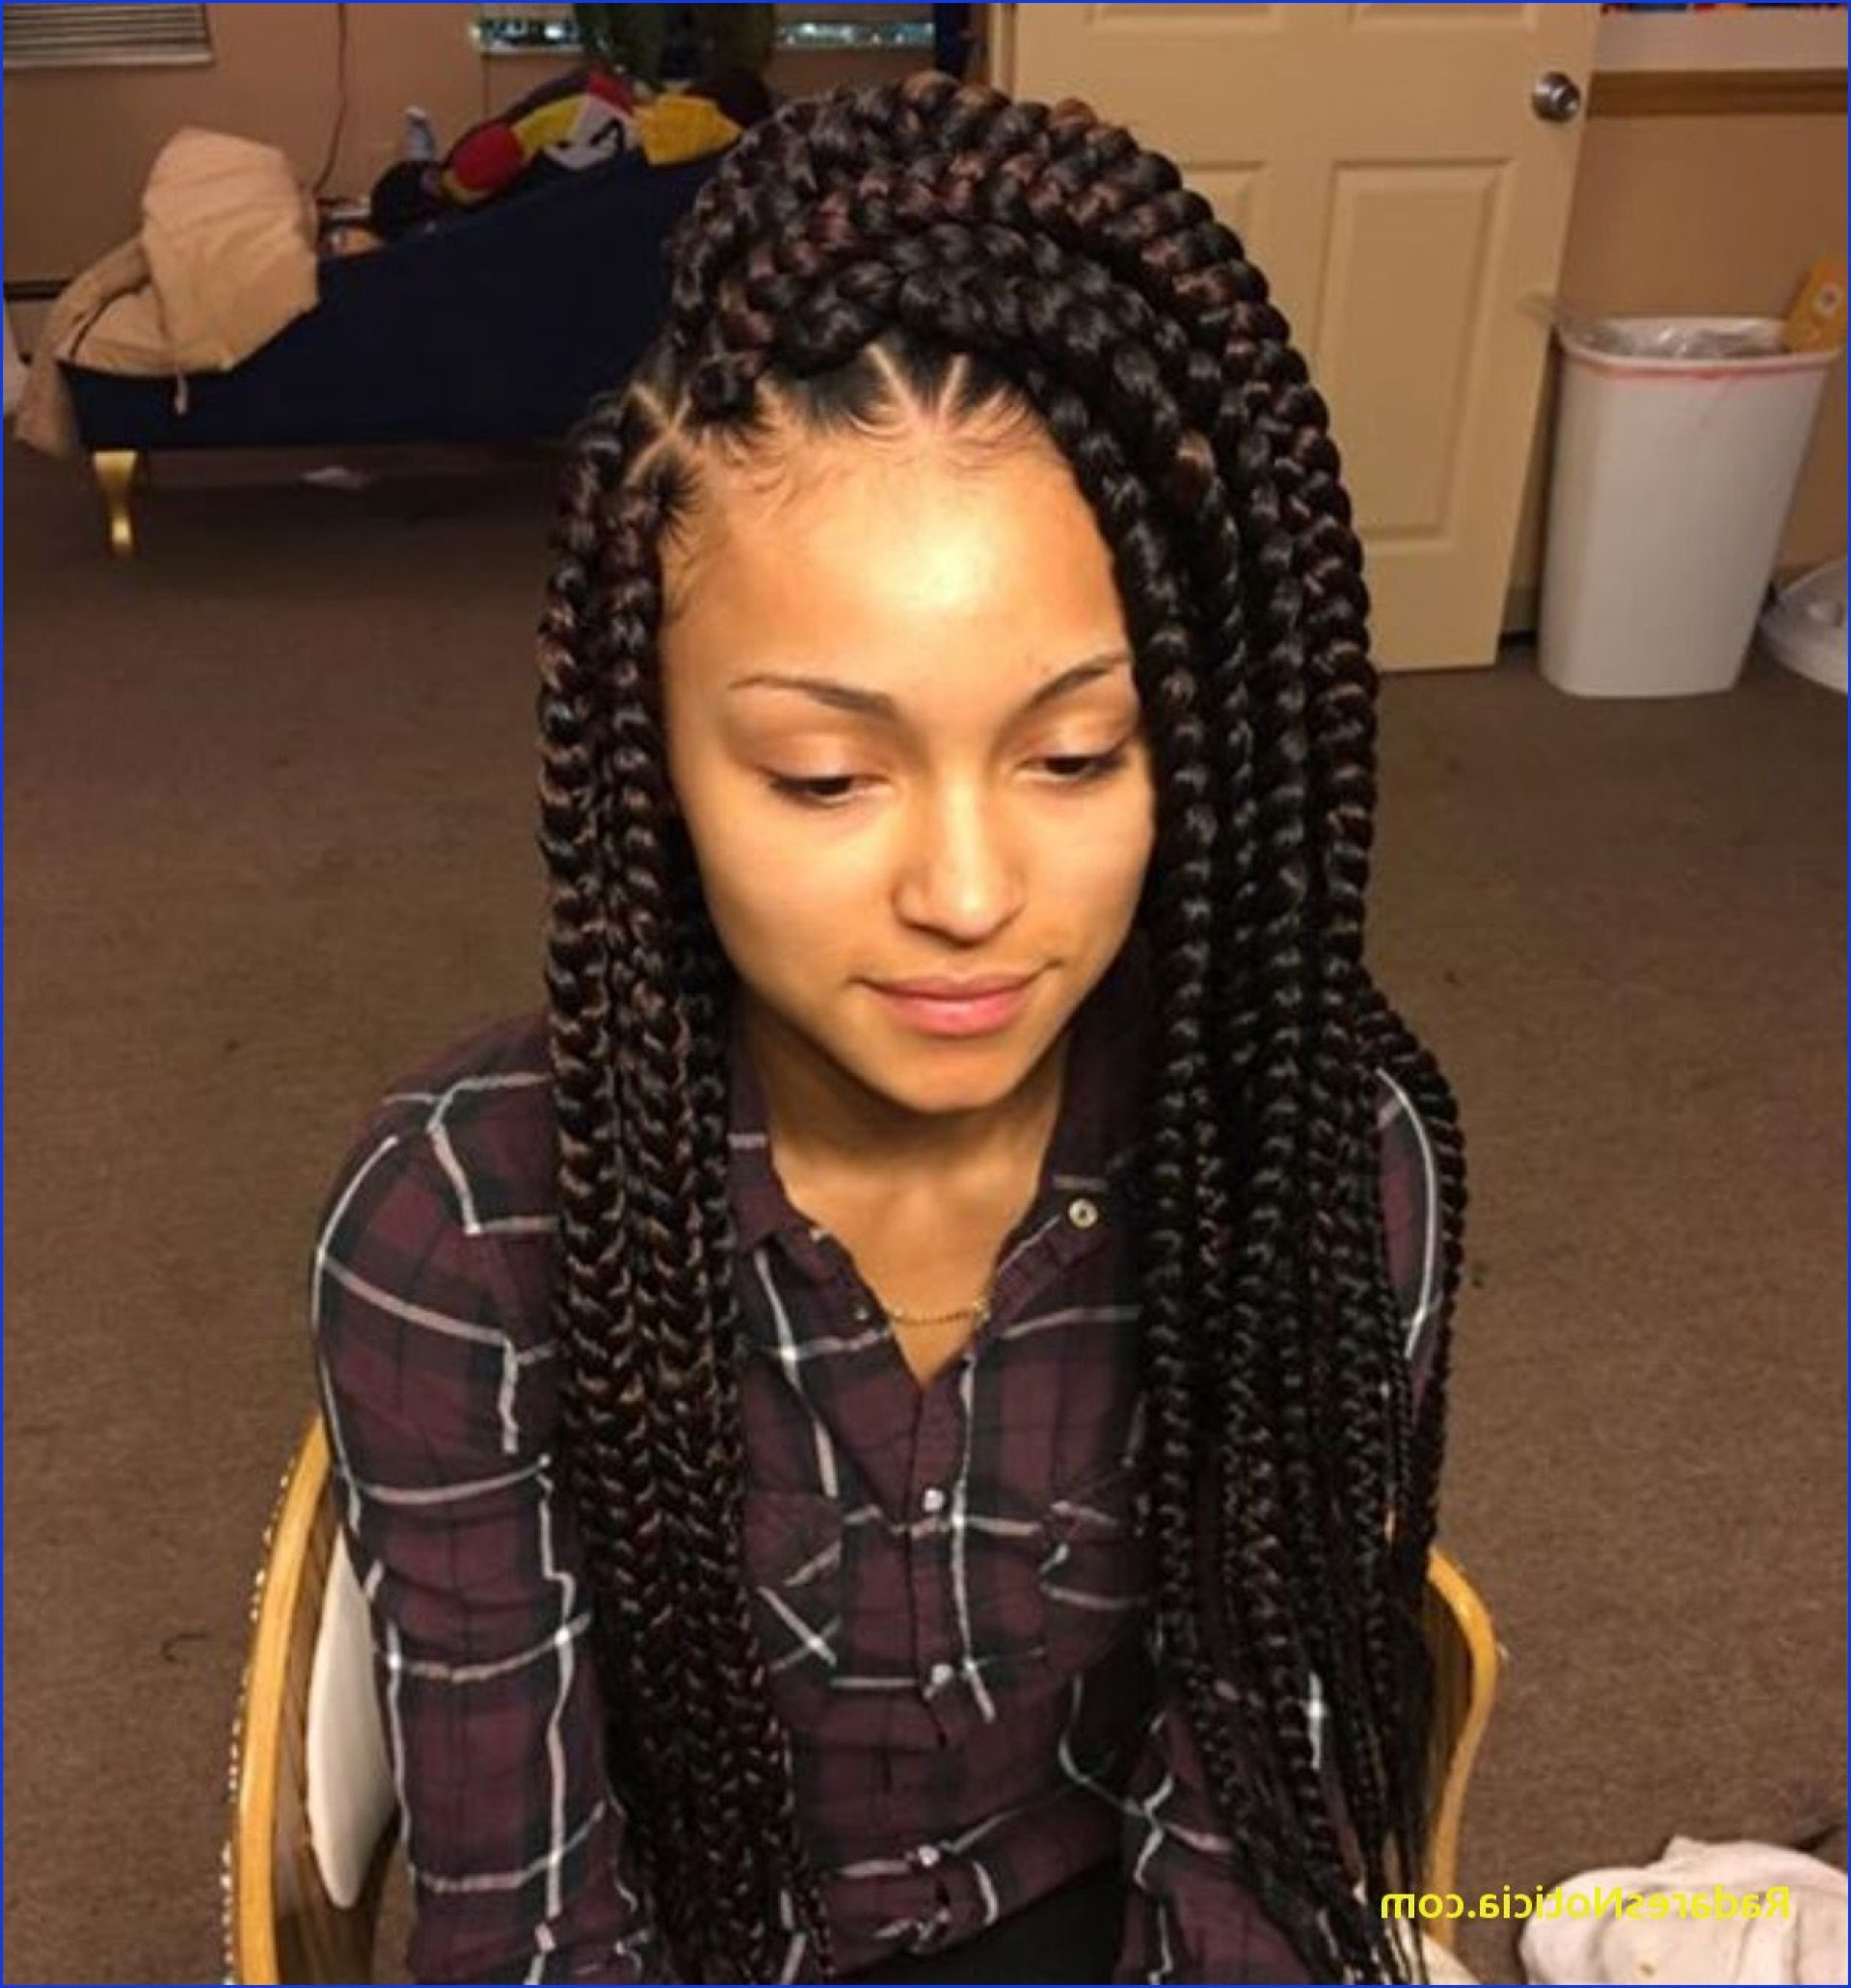 Hairstyles : Braided Mohawk Updo Fab Fashion Braided Mohawk Intended For 2021 Big Braid Mohawk Hairstyles (View 8 of 20)